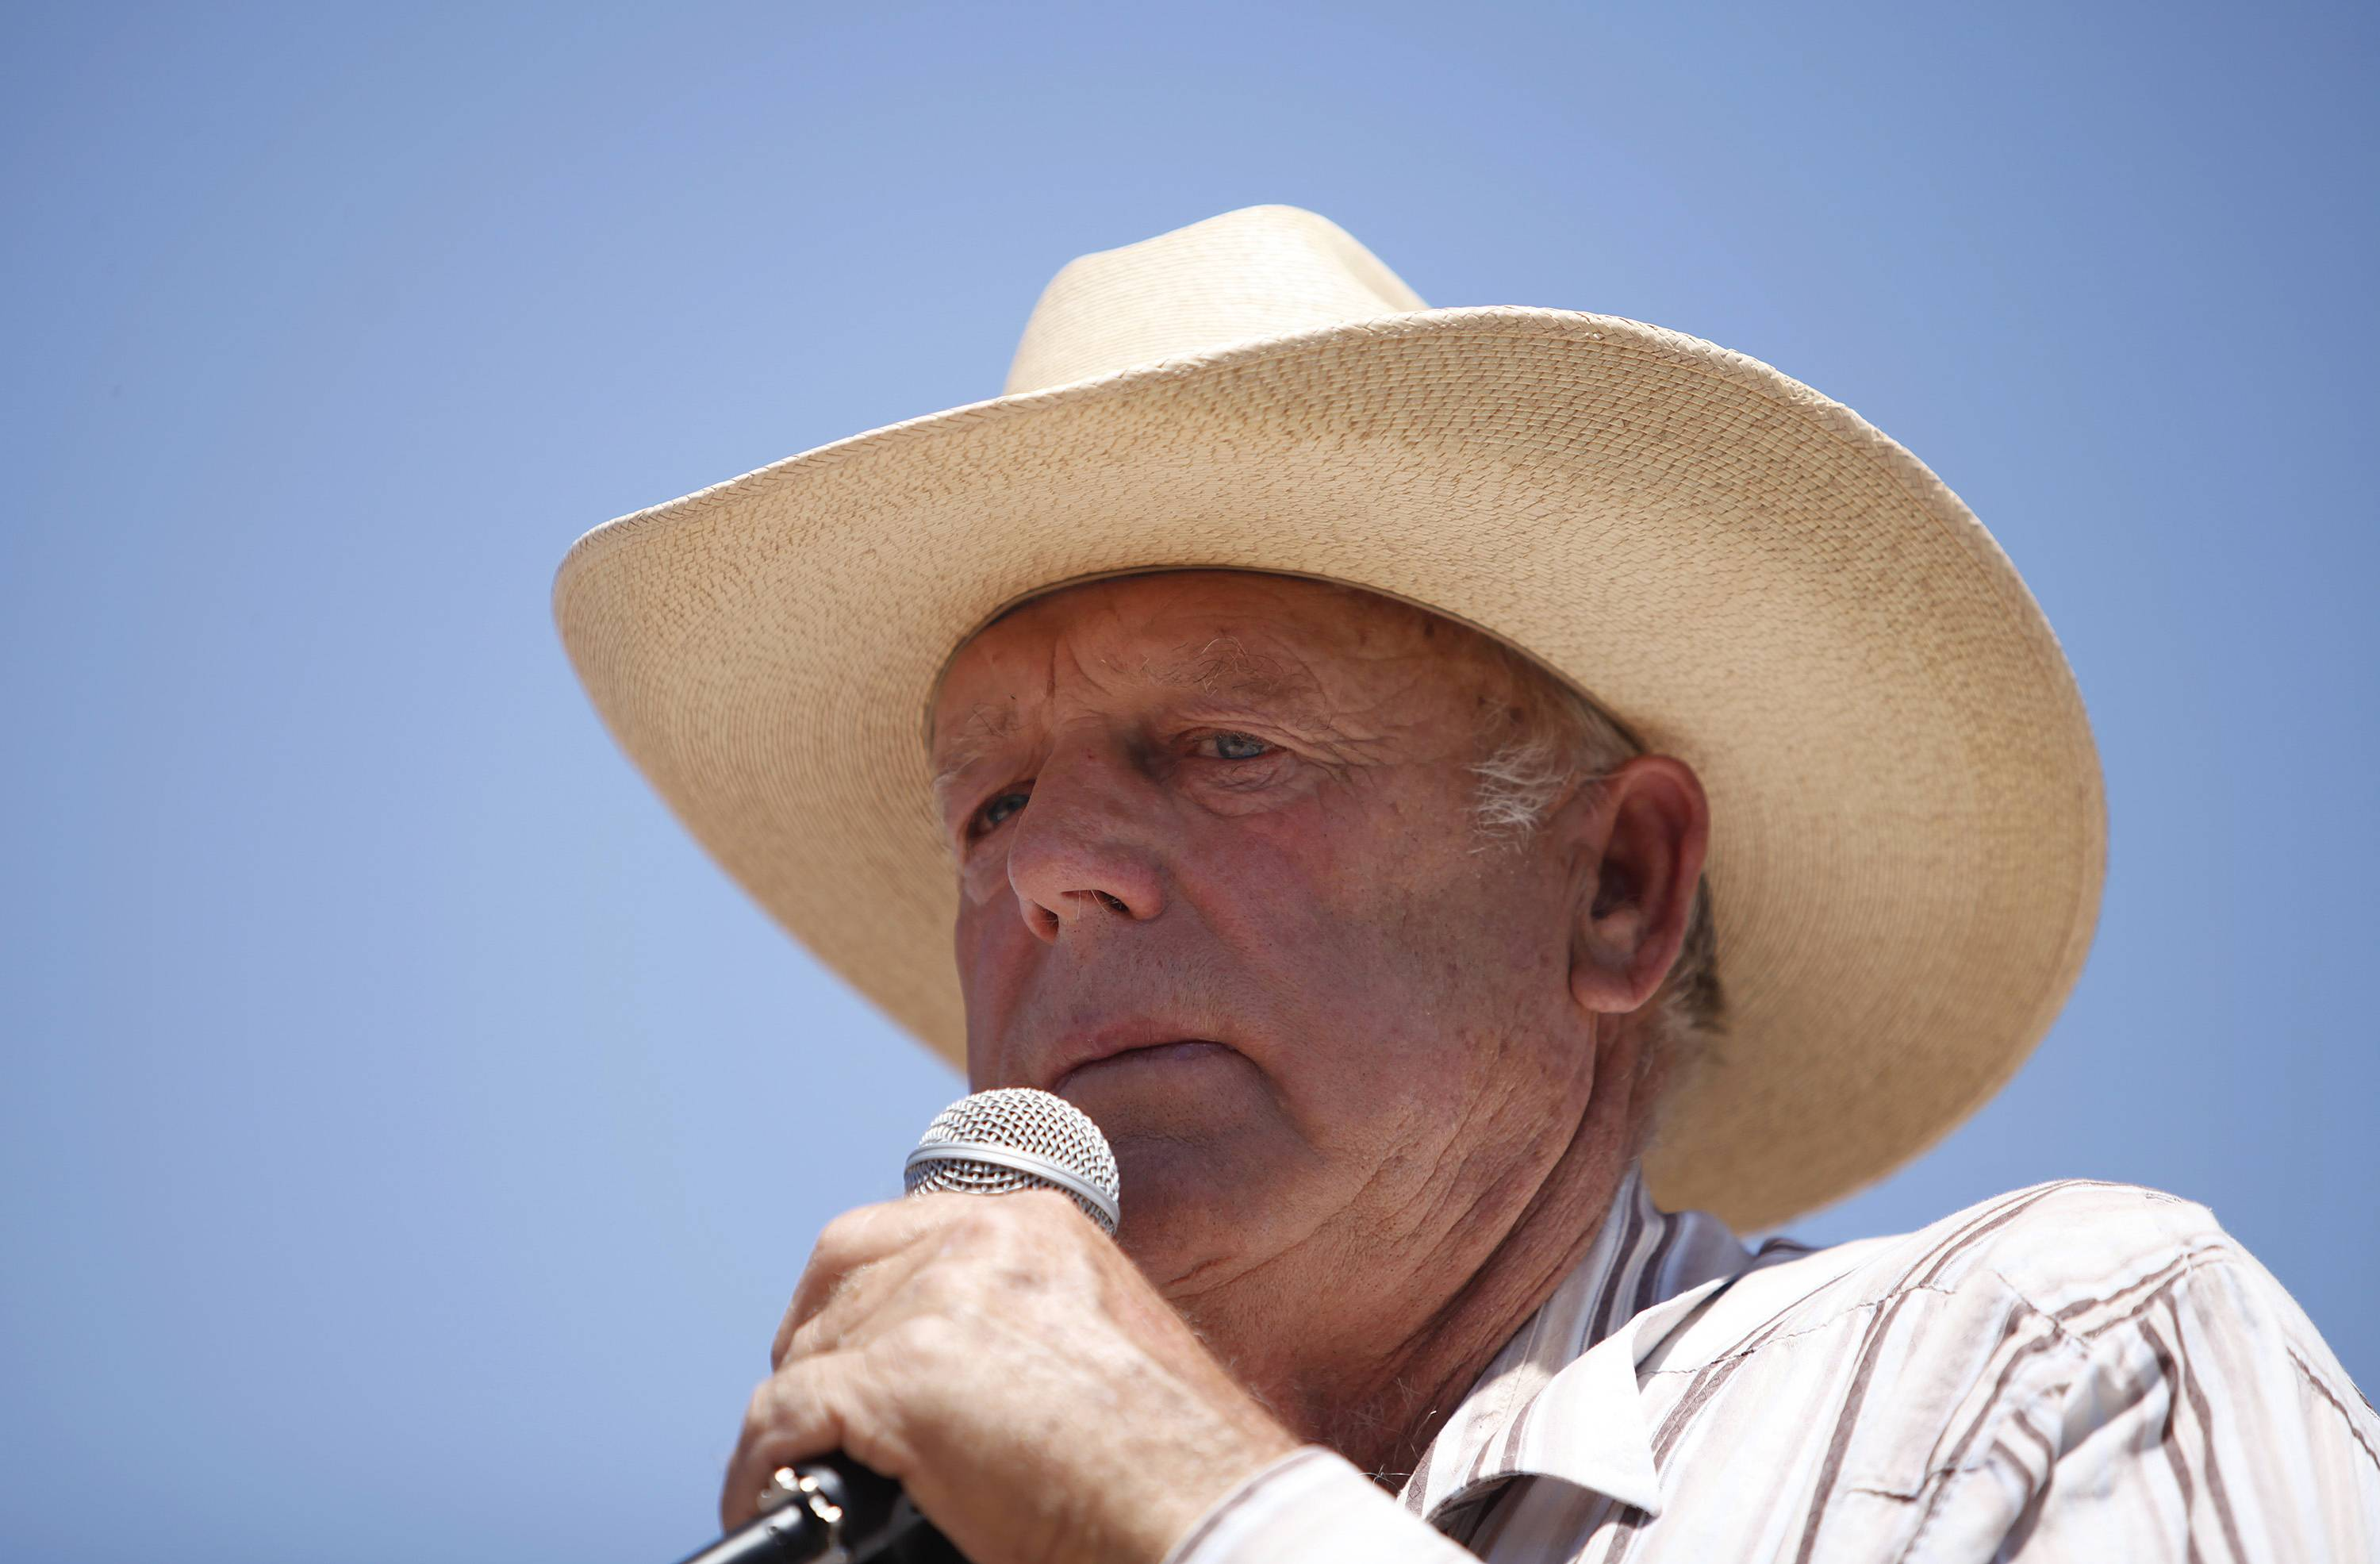 Rancher Cliven Bundy, a Nevada rancher who became a conservative folk hero for standing up to the government in a fight over grazing rights, lost some of his staunch defenders Thursday after wondering aloud whether blacks might have had it better under slavery.